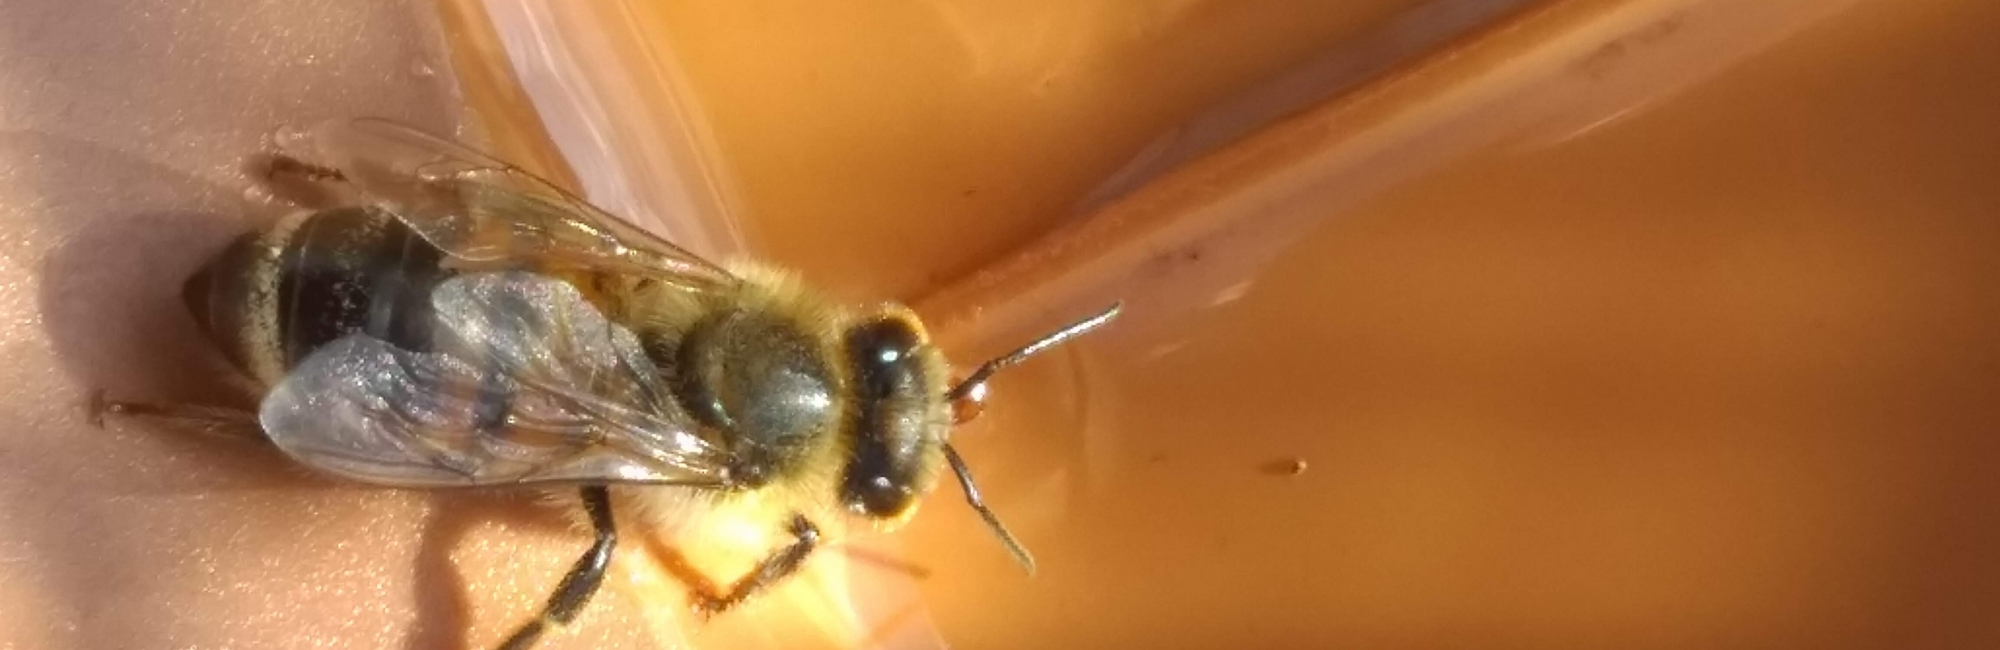 Bee colonies may be used as standalone explosives detection tools